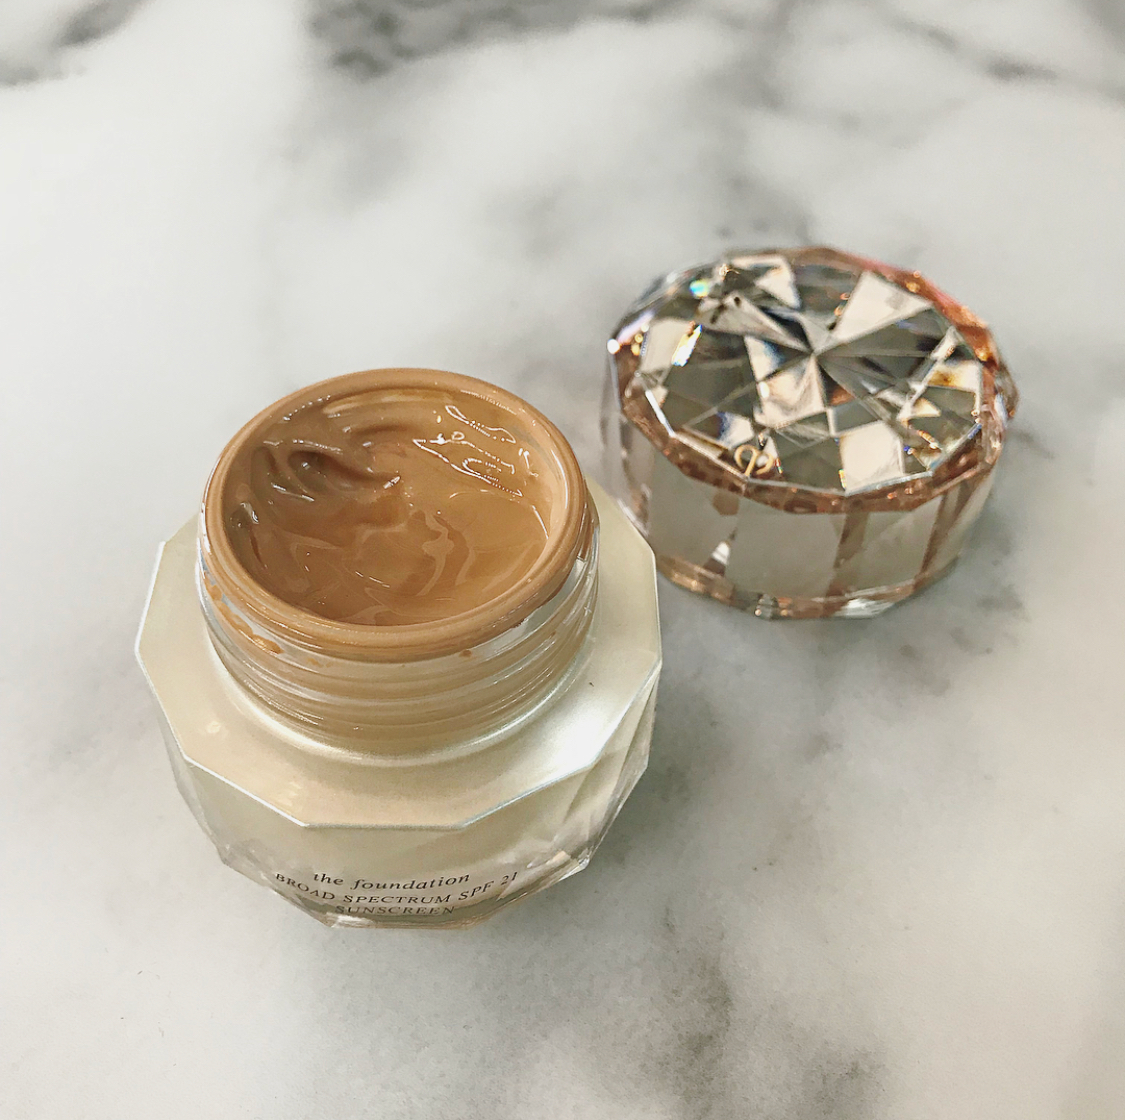 Most Expensive Foundation